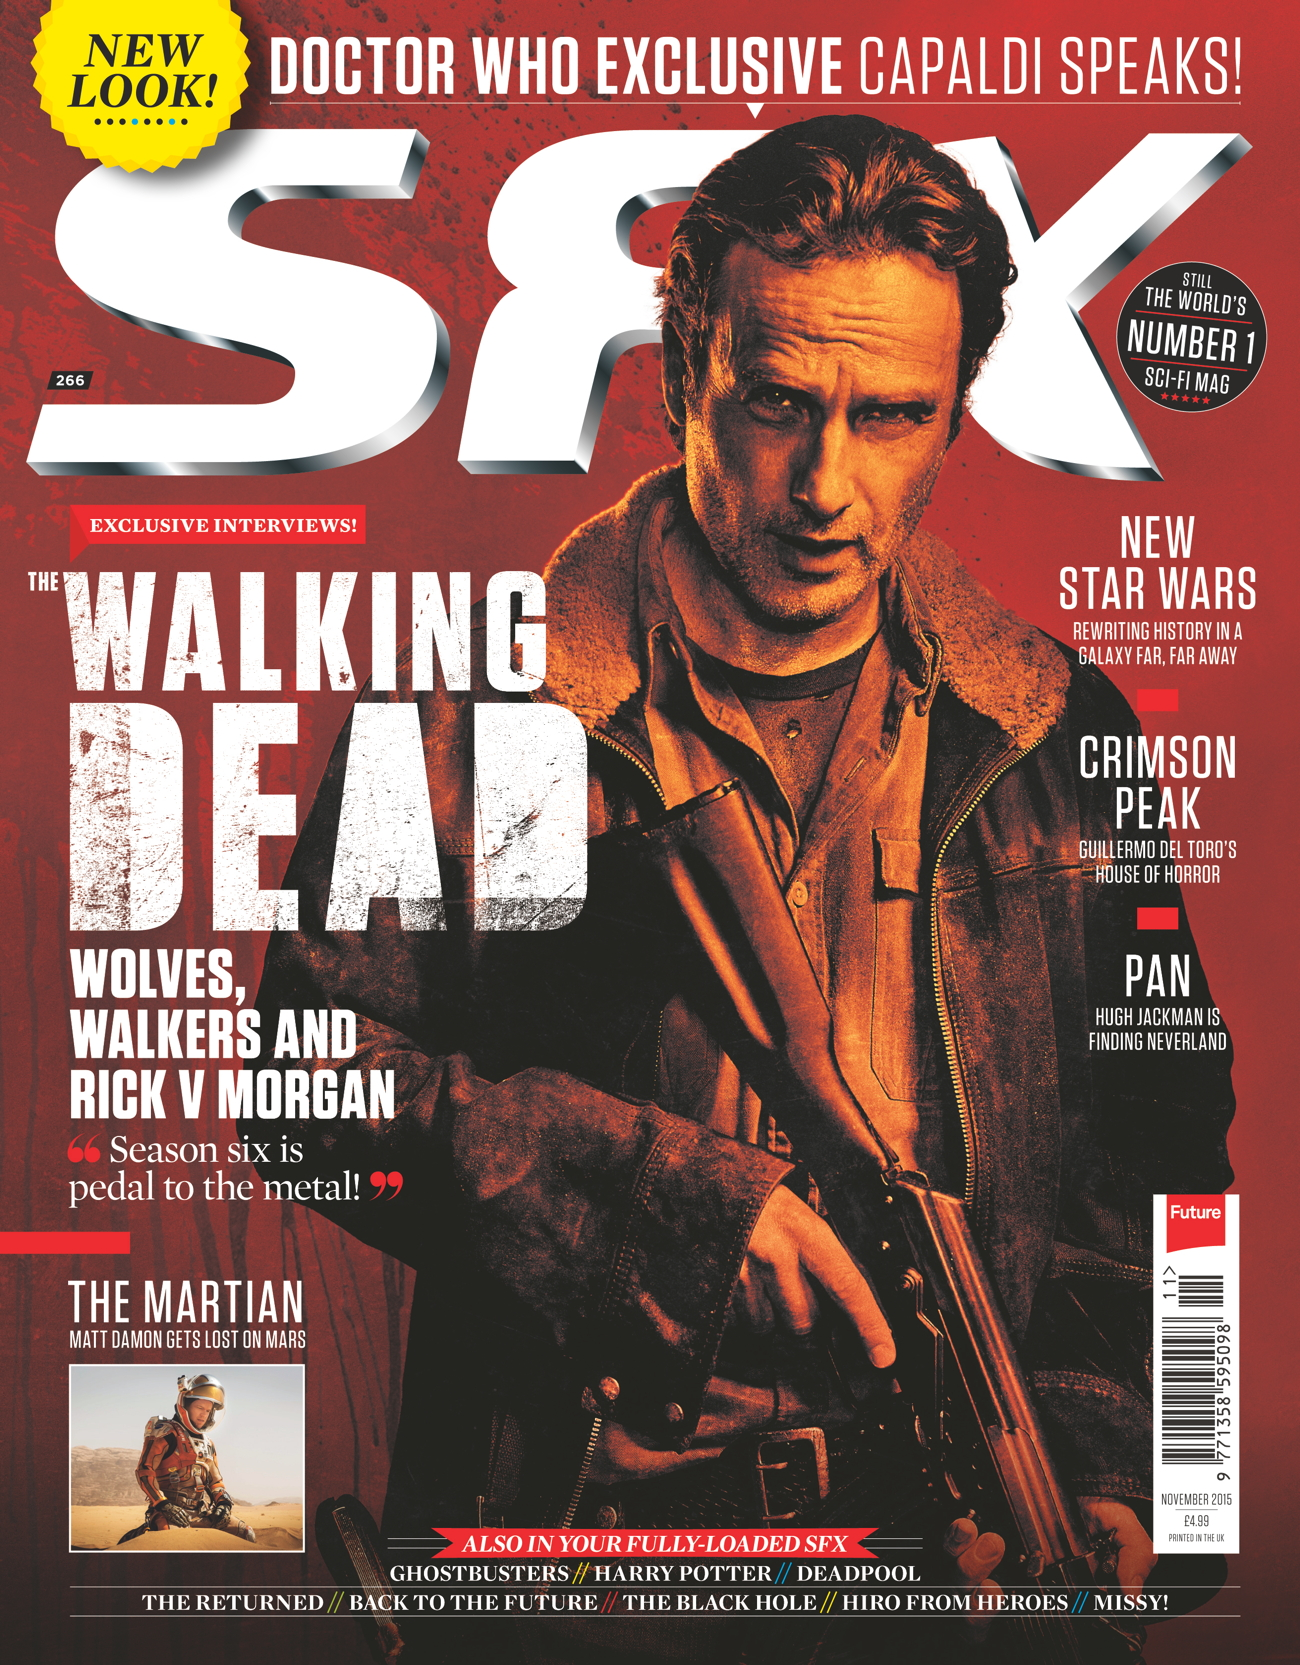 SFX Issue 266 (Credit: Future Publishing)